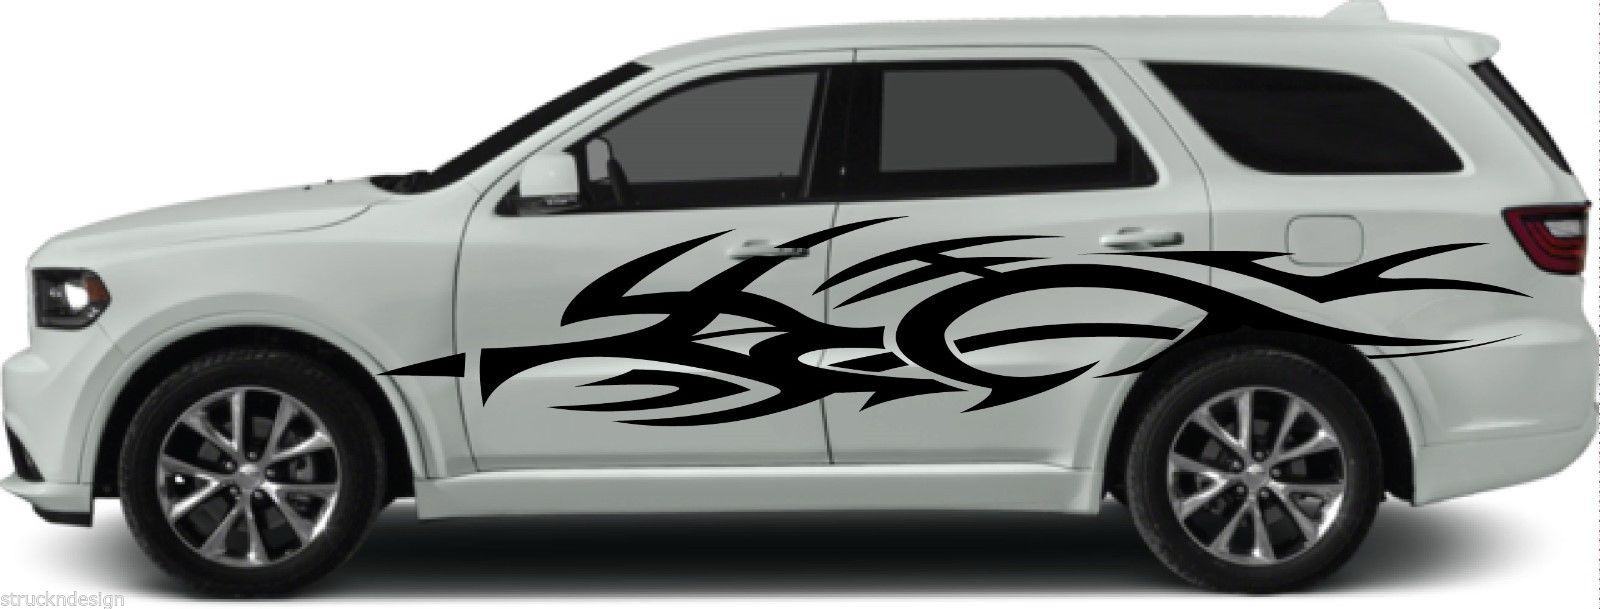 For 1set 2pcs tribal side vinyl decal sticker car truck vehicle dodge reflective camo suv van car styling